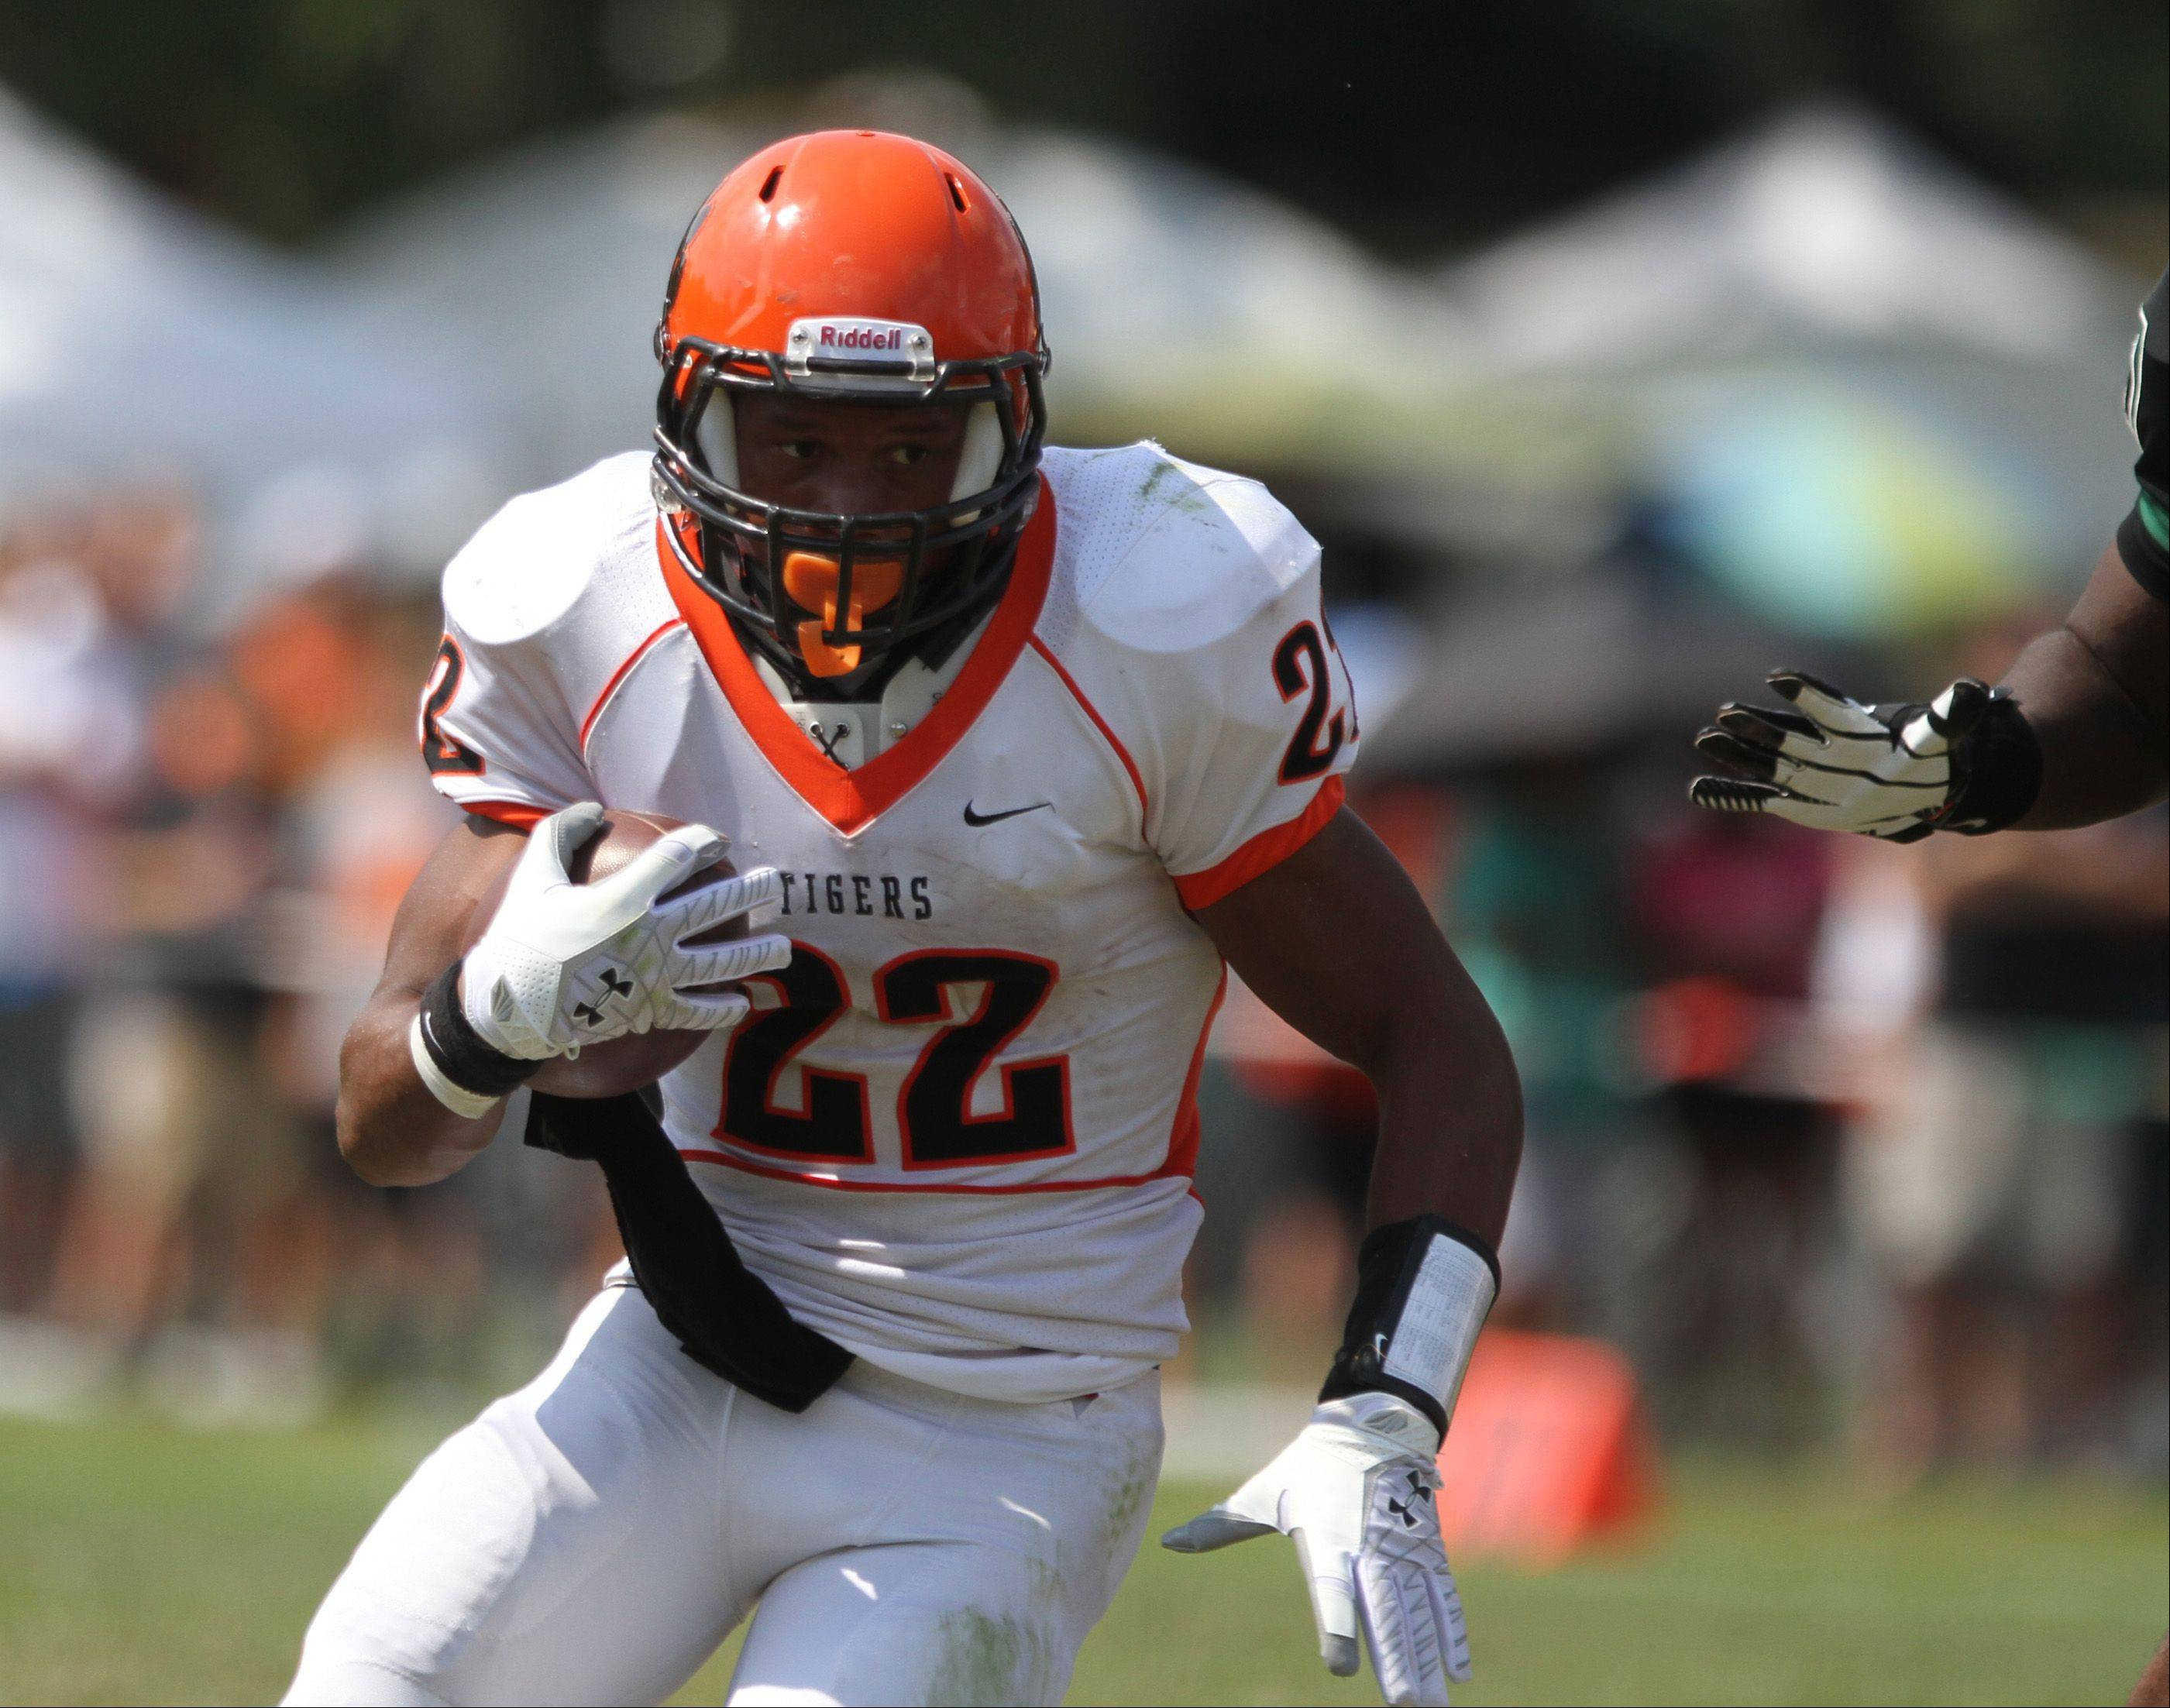 Wheaton Warrenville South running back Brandon Adams runs with the ball at Glenbard West on Saturday, August 25.